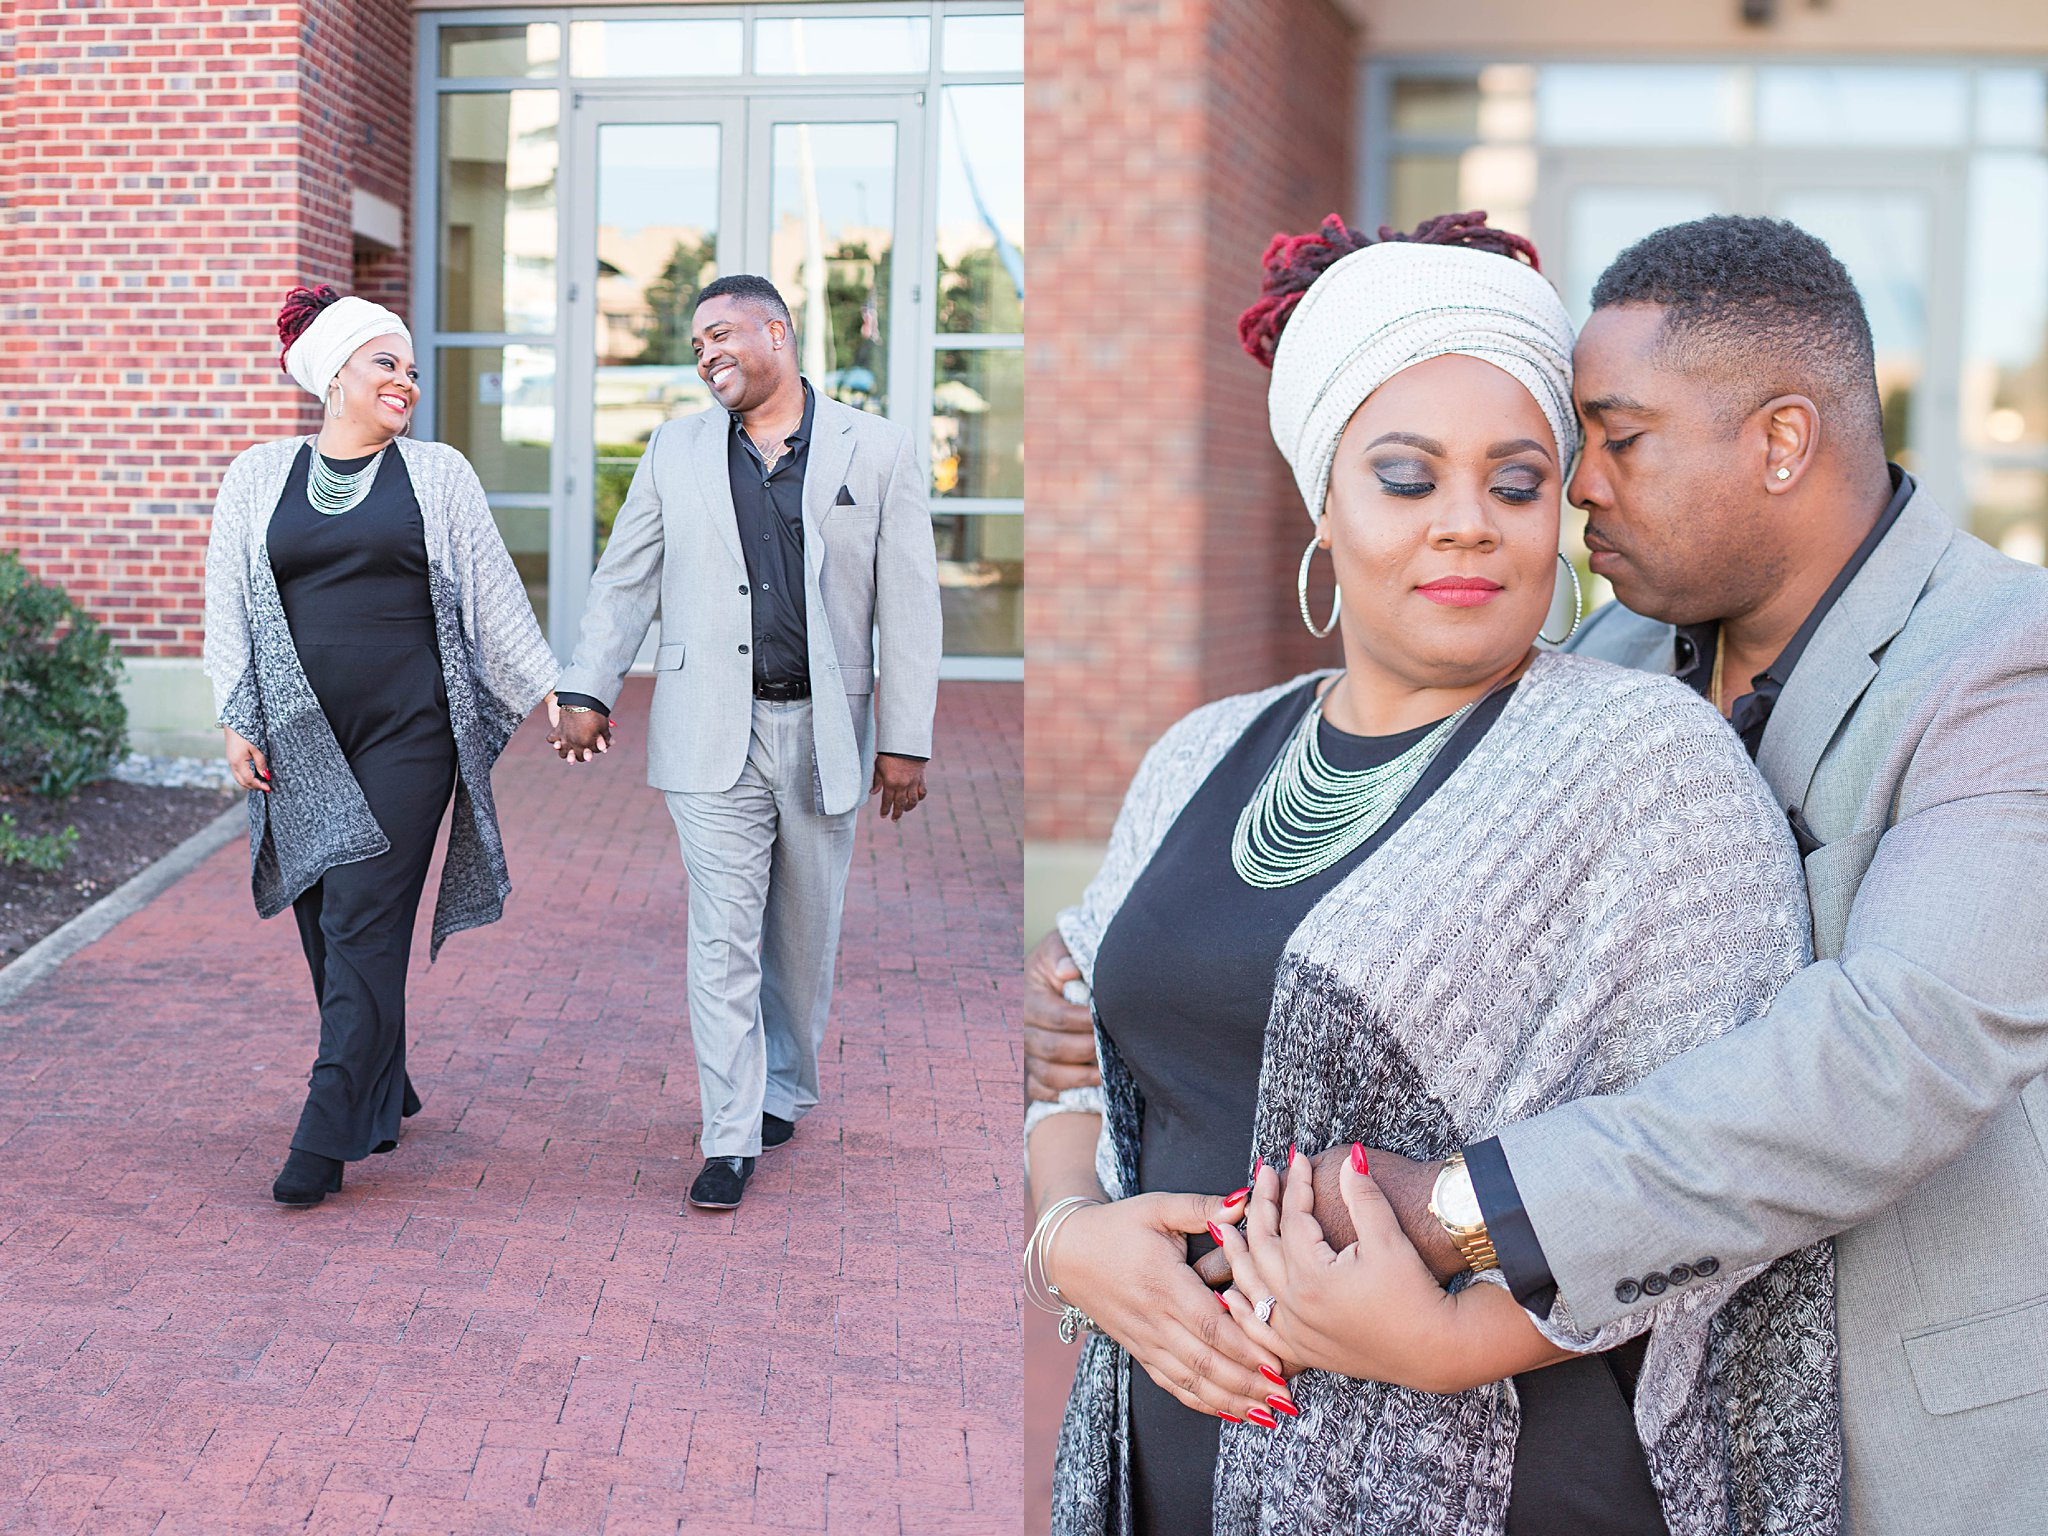 downtown_portsmouth_engagement_session_0458.jpg